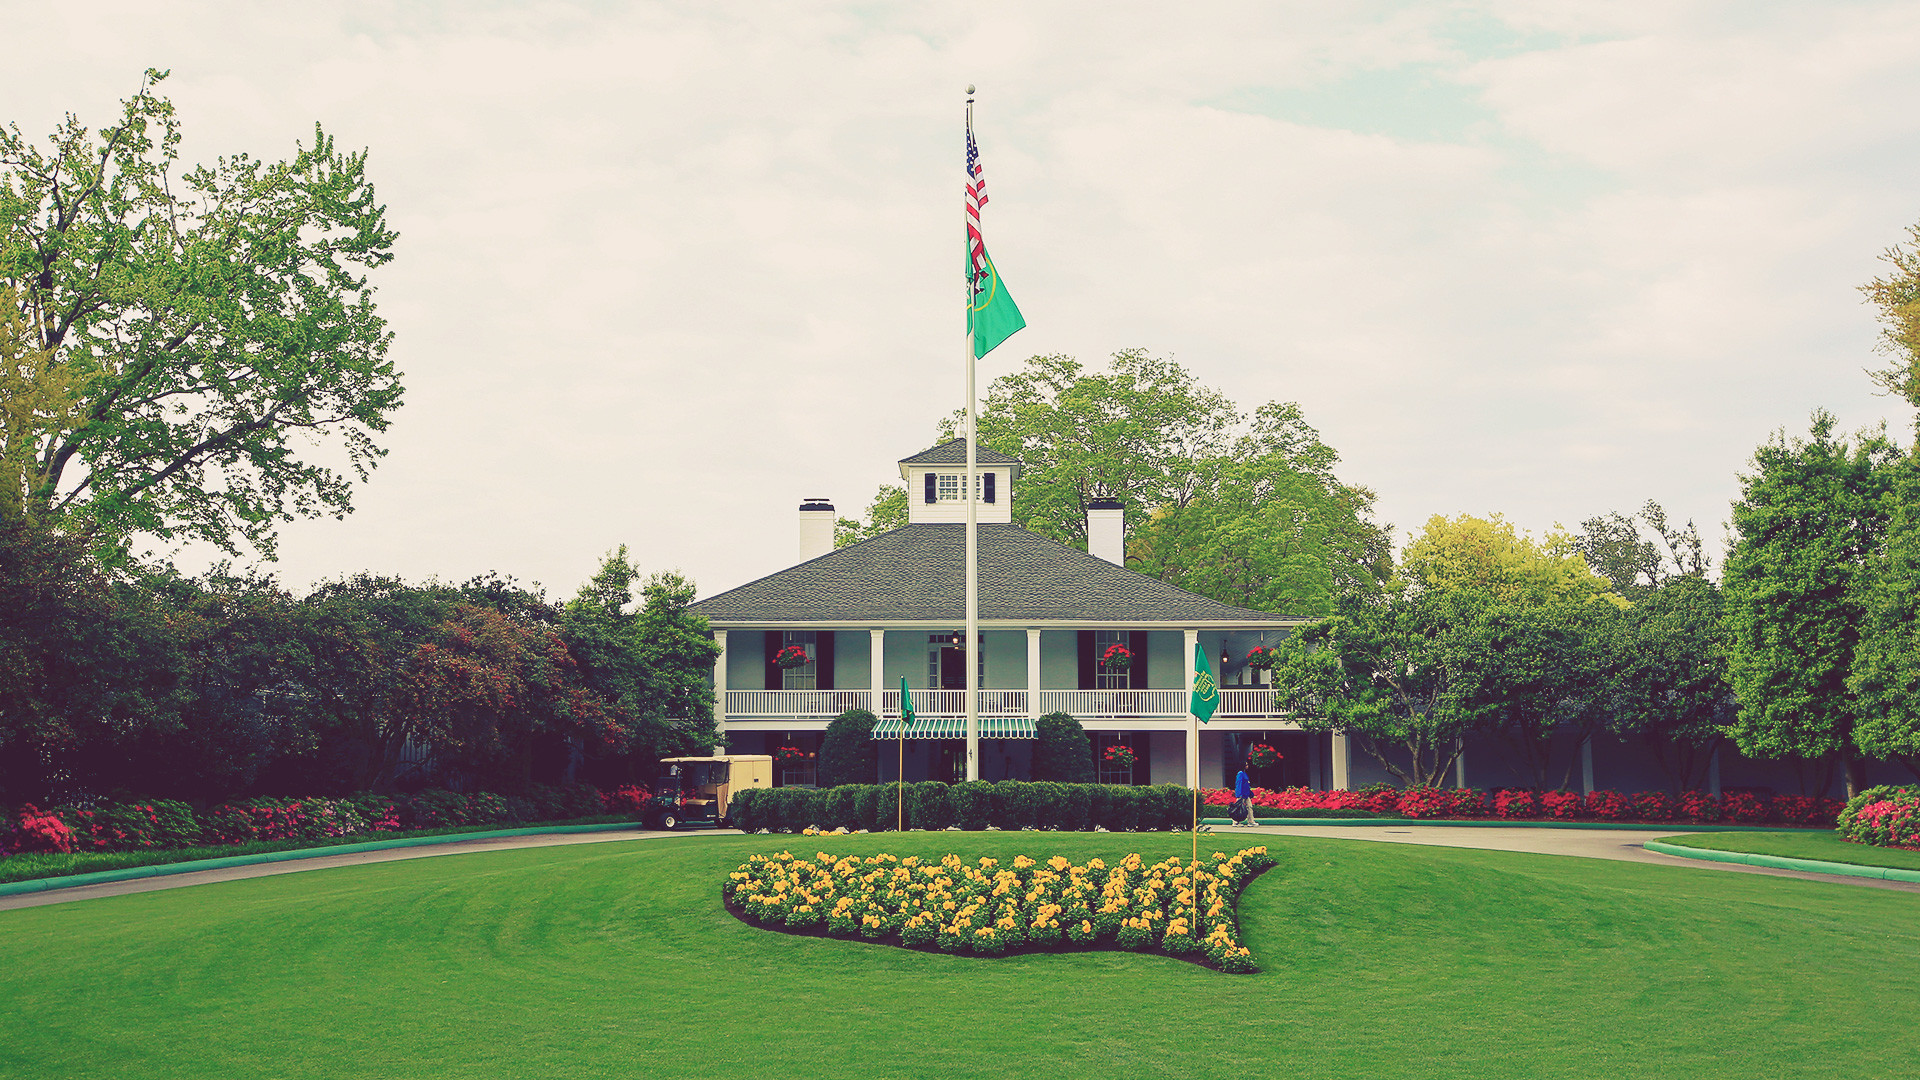 2018 Wallpaper of Augusta National 67 images 1920x1080